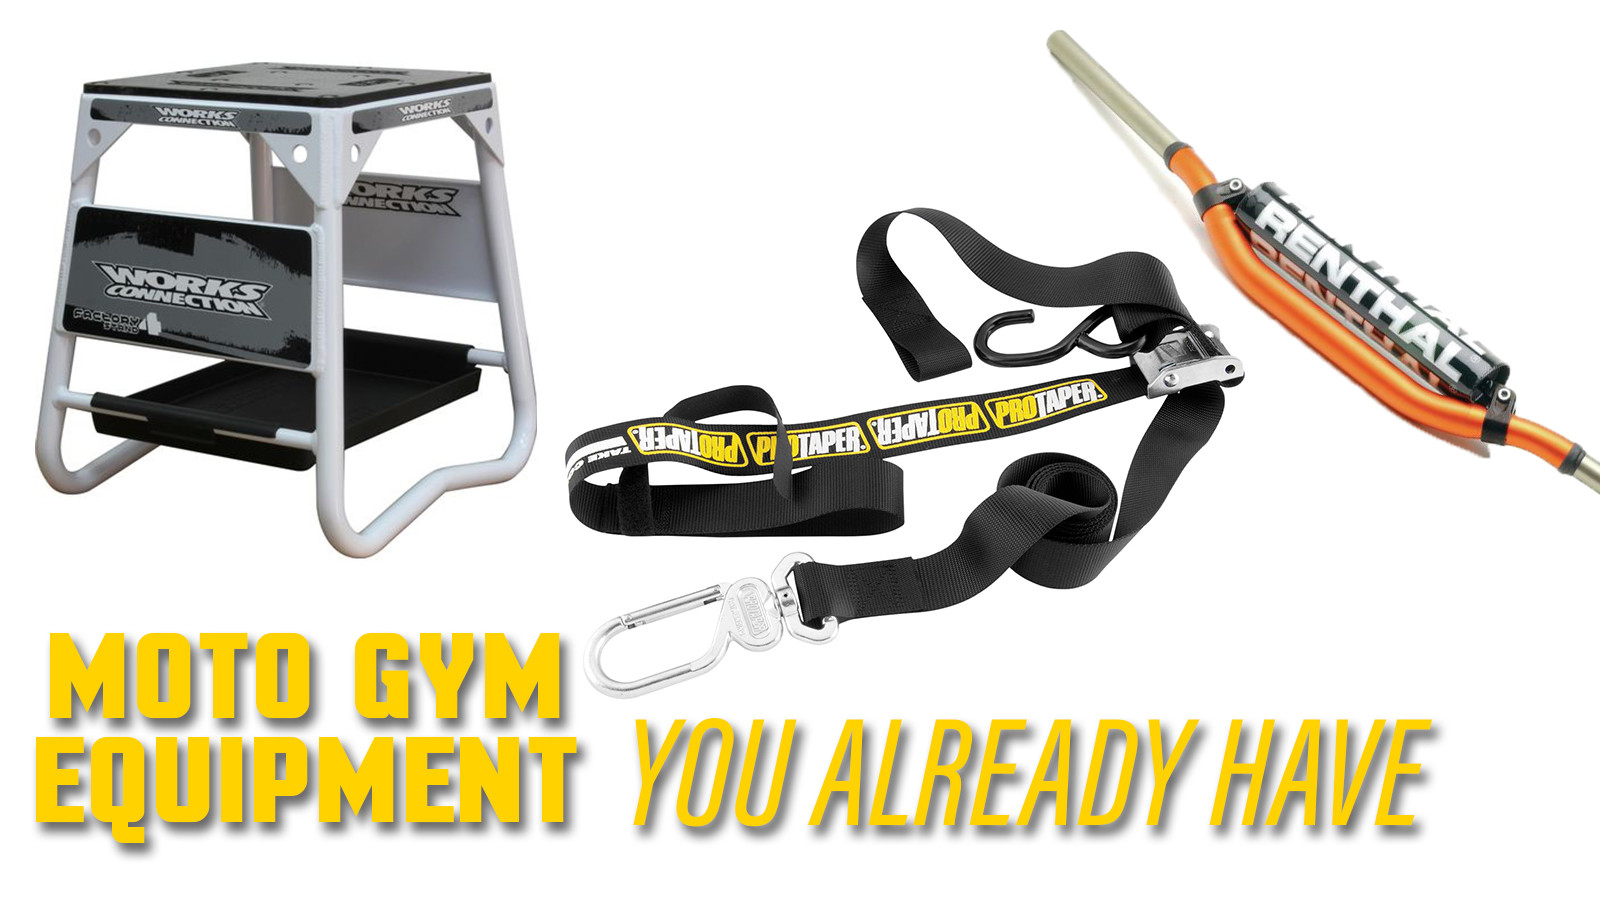 Moto Gym Equipment You Already Have